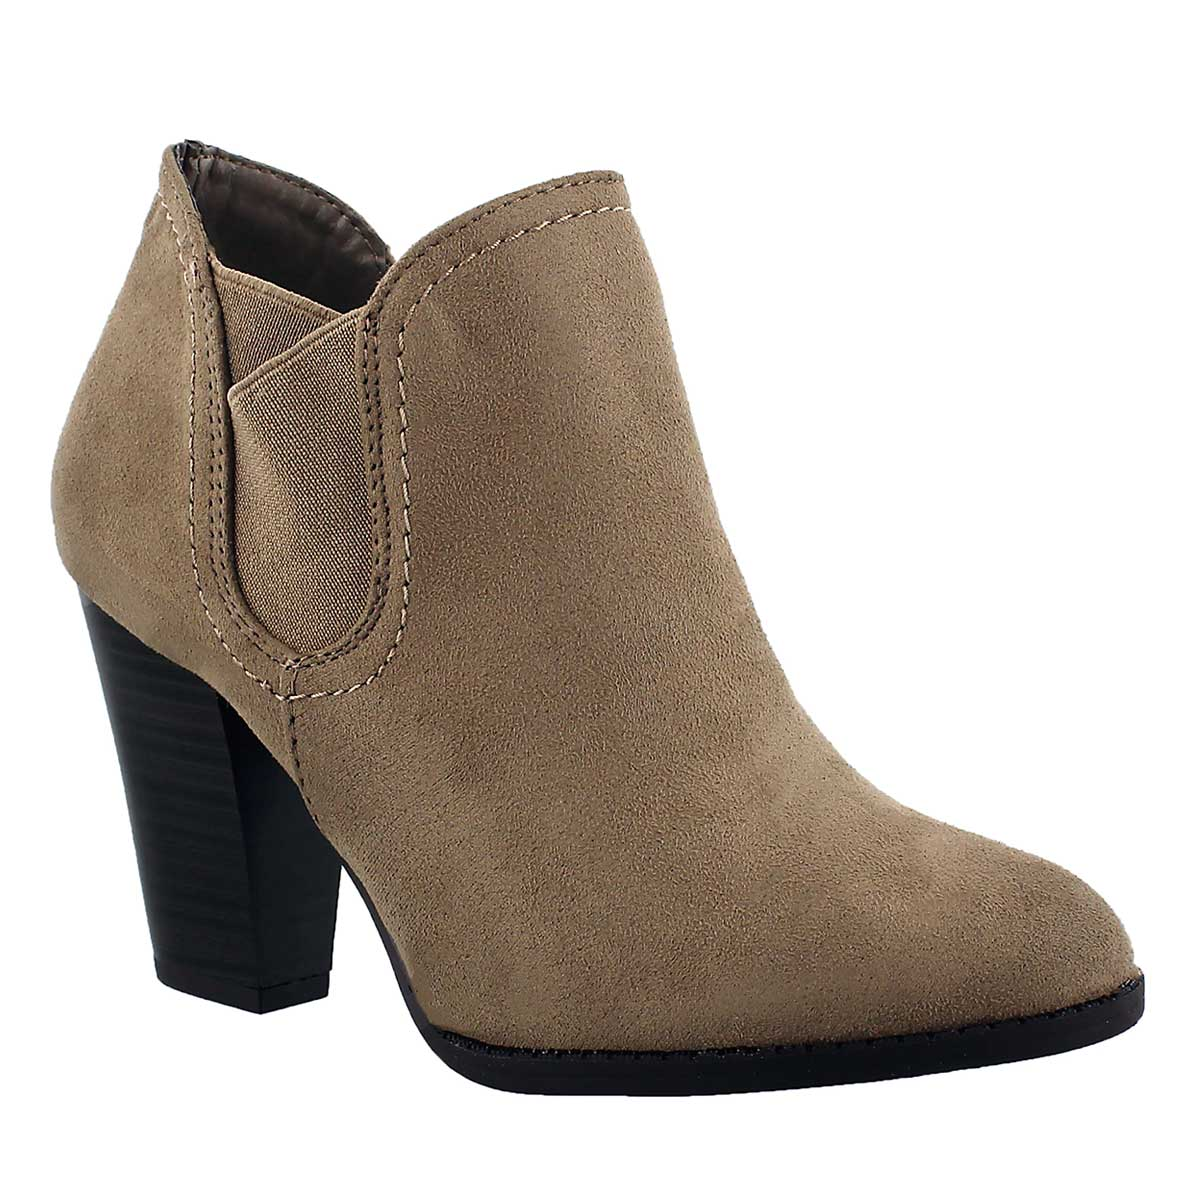 Lds Daphne cement lo dress ankle boot